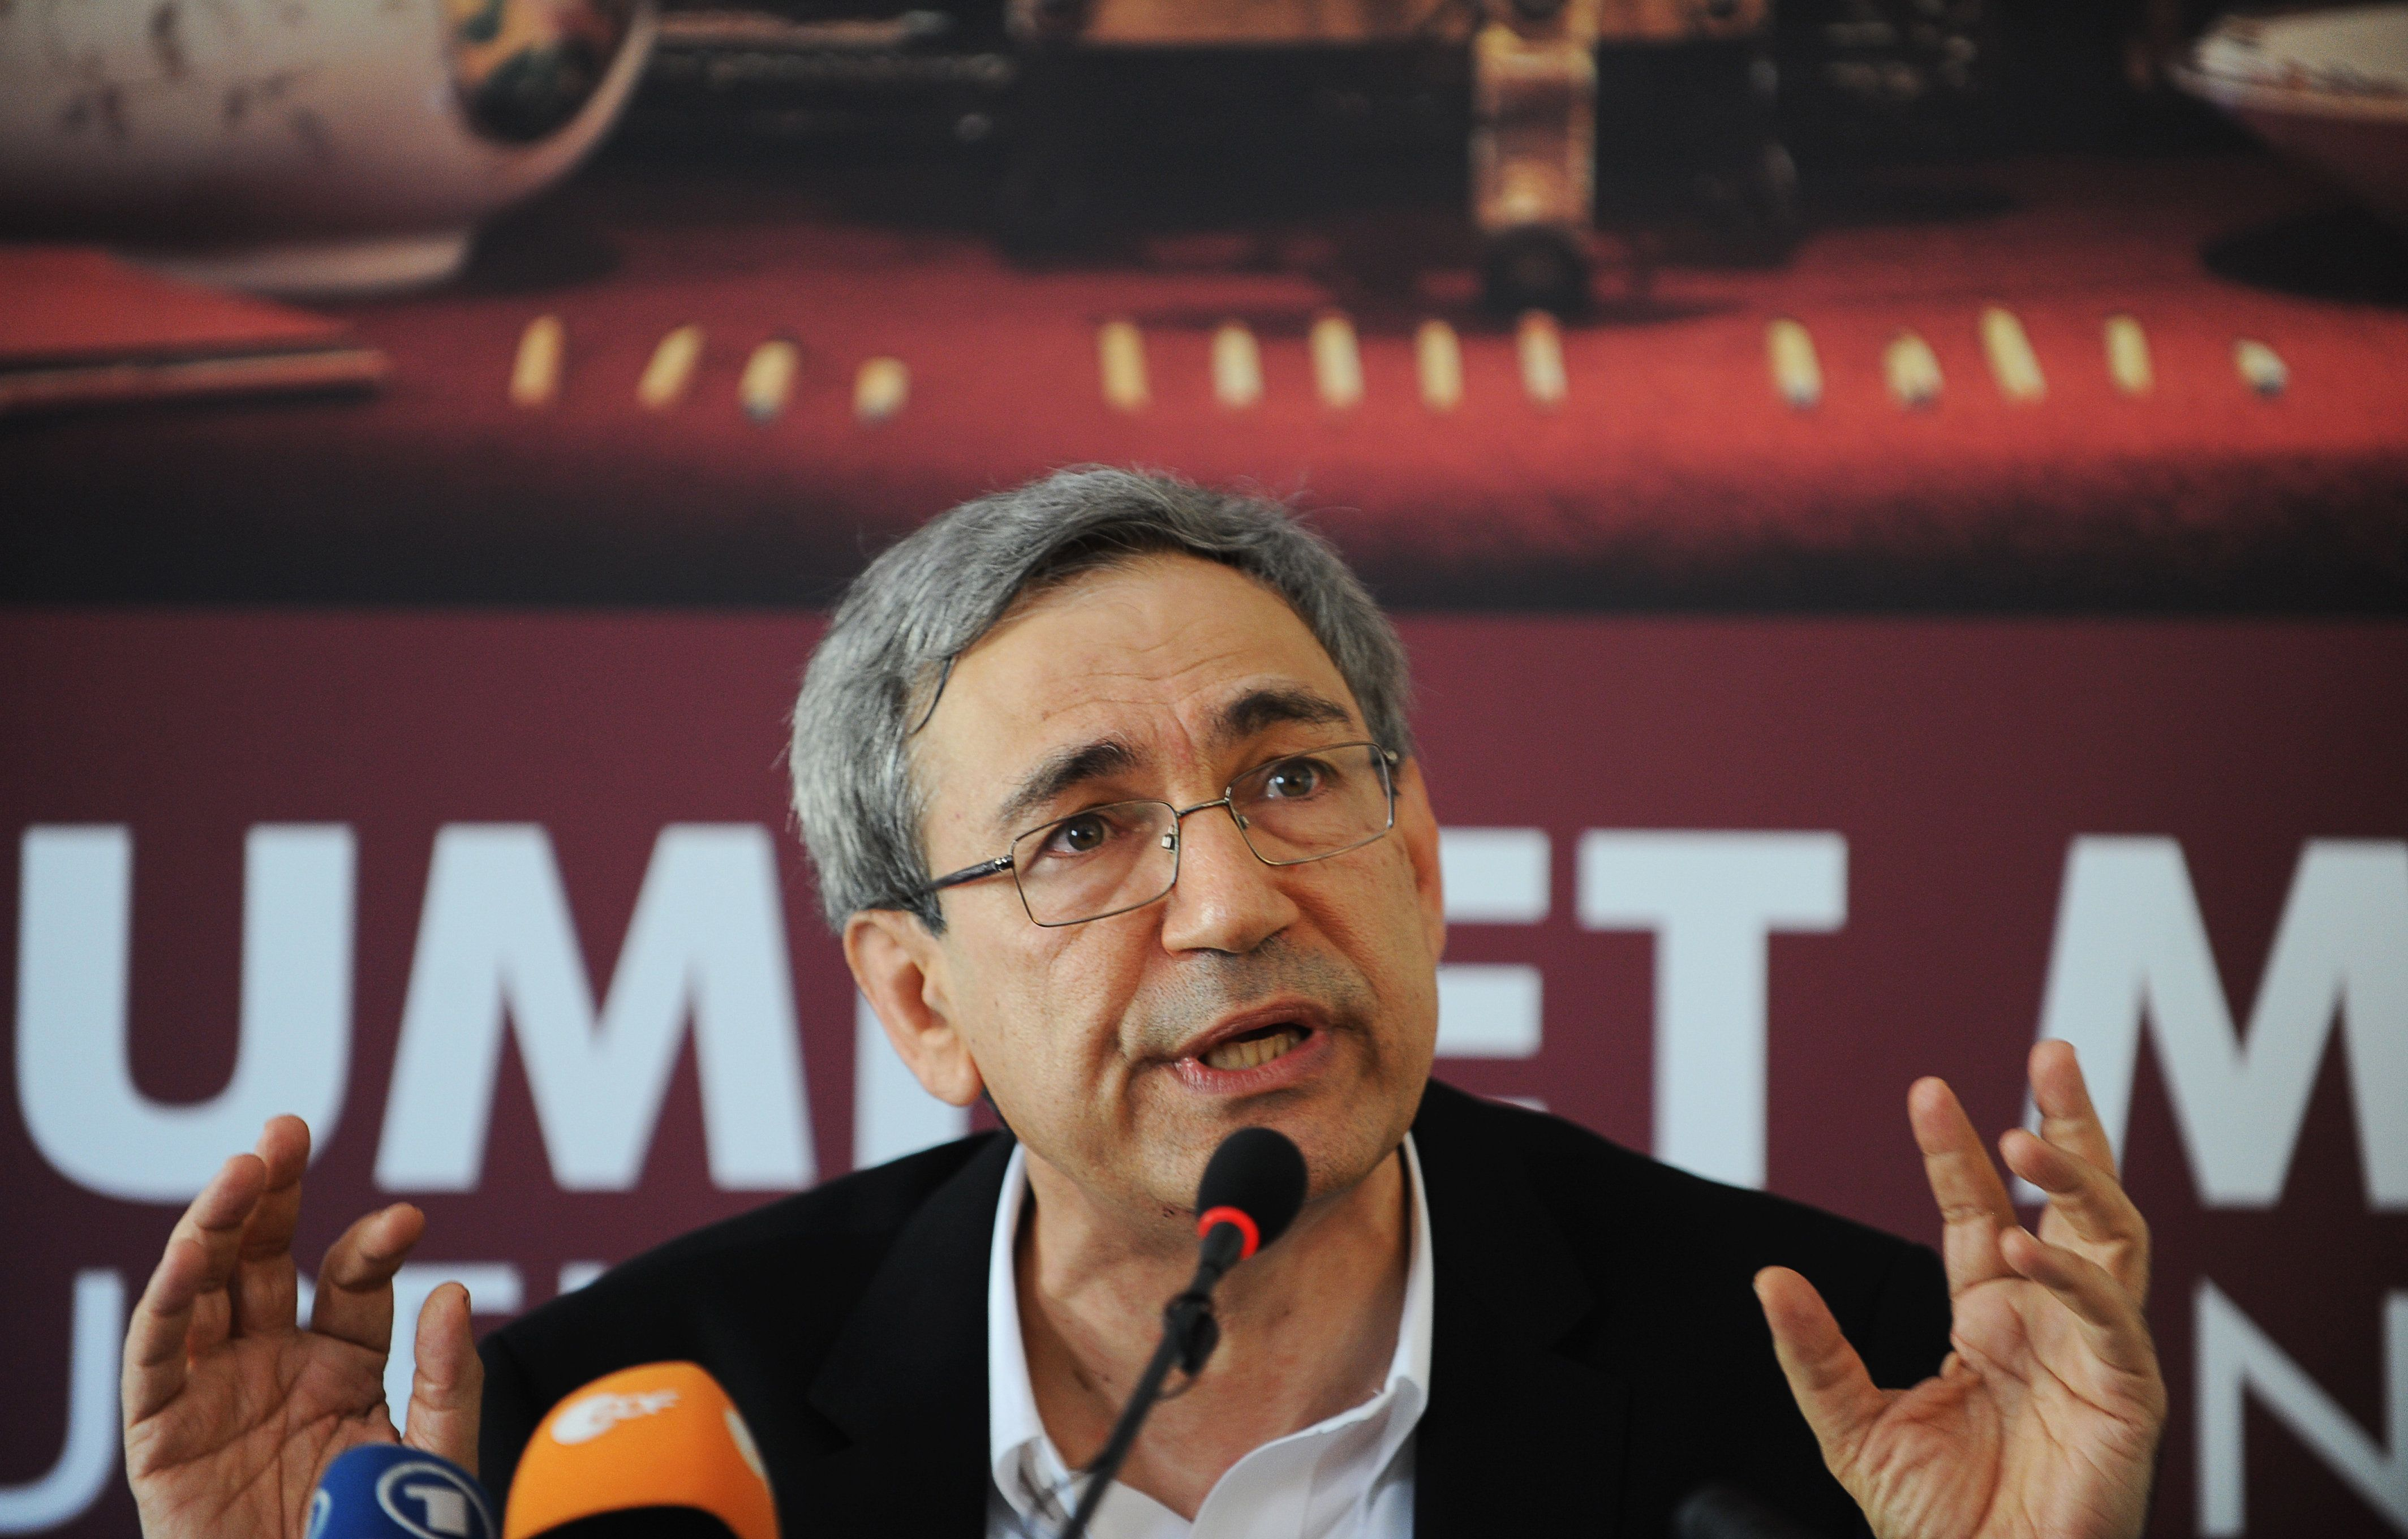 Orhan Pamuk, Turkish novelist and winner of the 2006 Nobel Prize in Literature, speaks during a press conference before the opening of the Museum of Innocence in Istanbul on April 27, 2012. 'The Museum of Innocence', is a novel by Orhan Pamuk published in 2008.  AFP PHOTO / BULENT KILIC        (Photo credit should read BULENT KILIC/AFP/GettyImages)